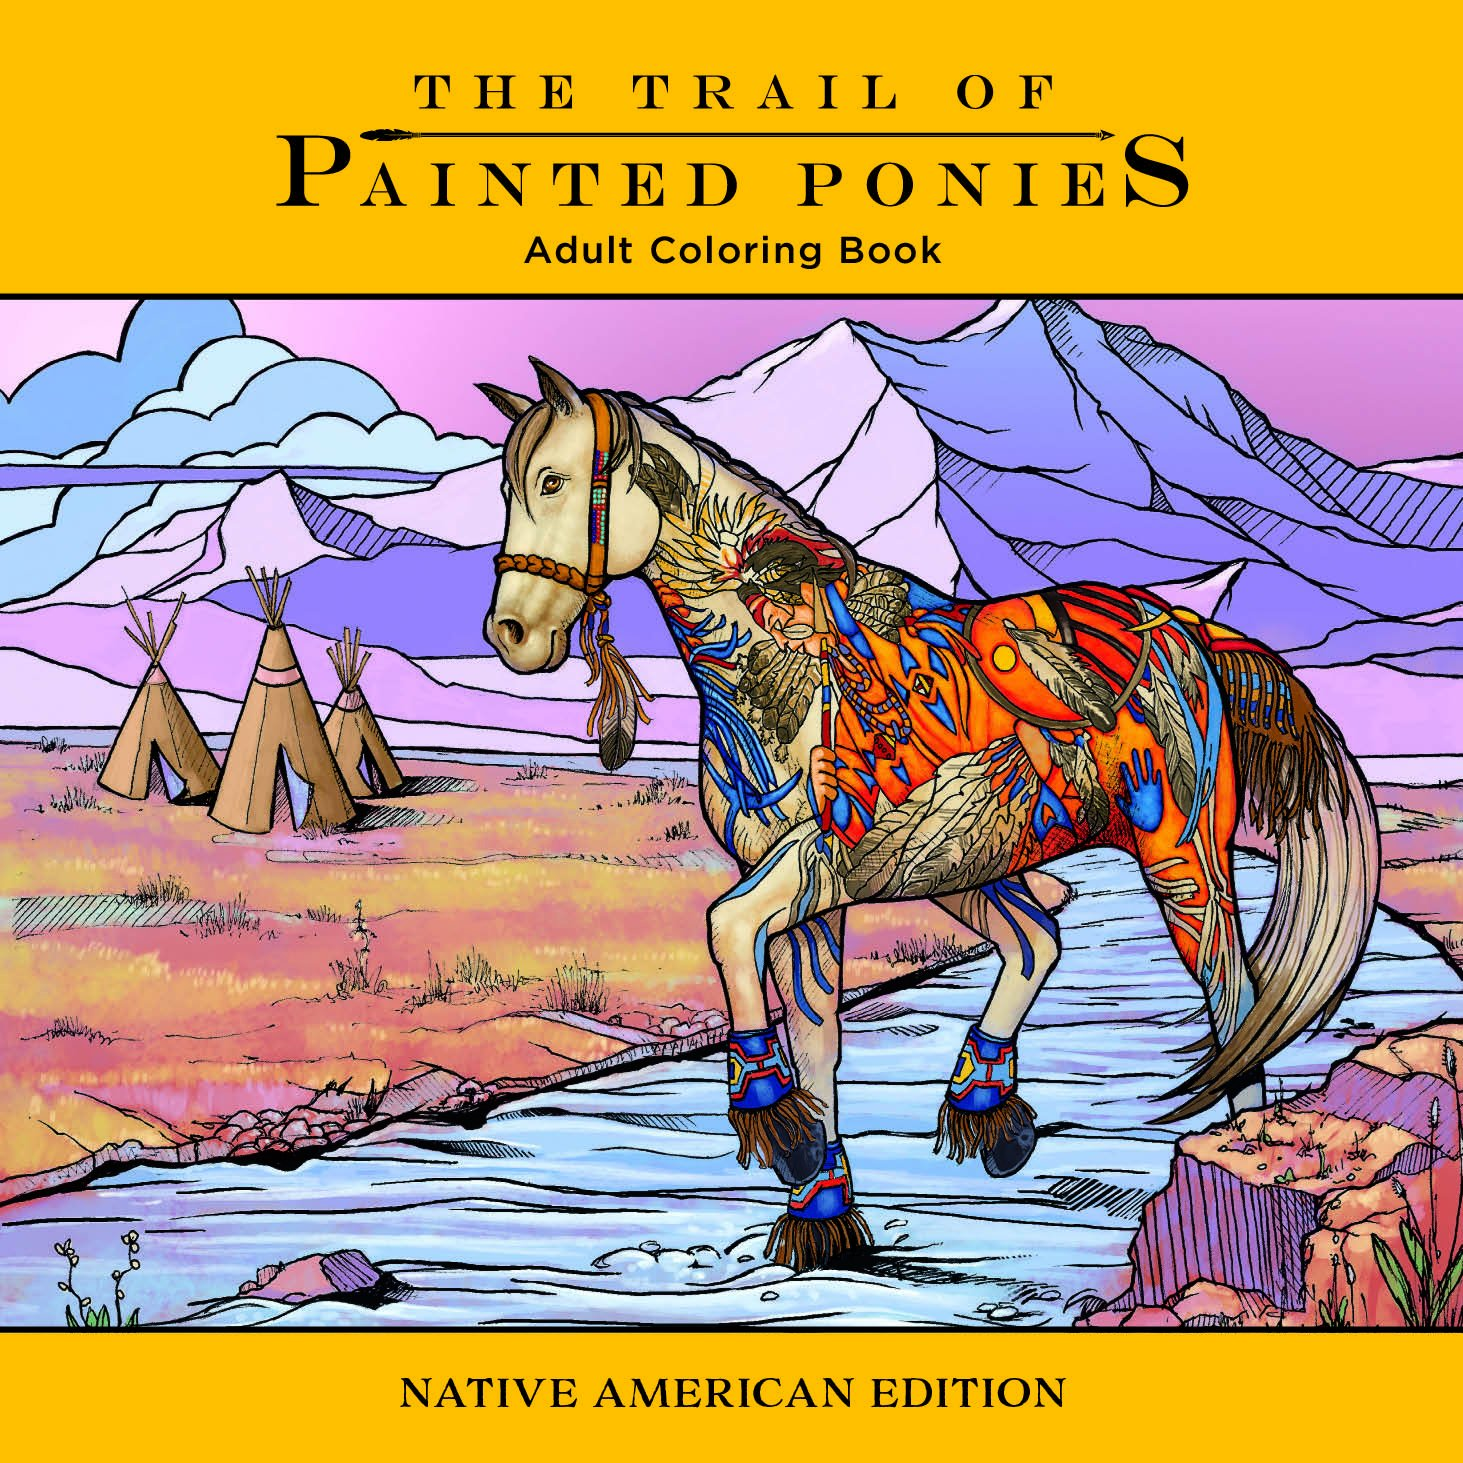 Amazon.com: Trail of Painted Ponies Coloring Book: Native American ...